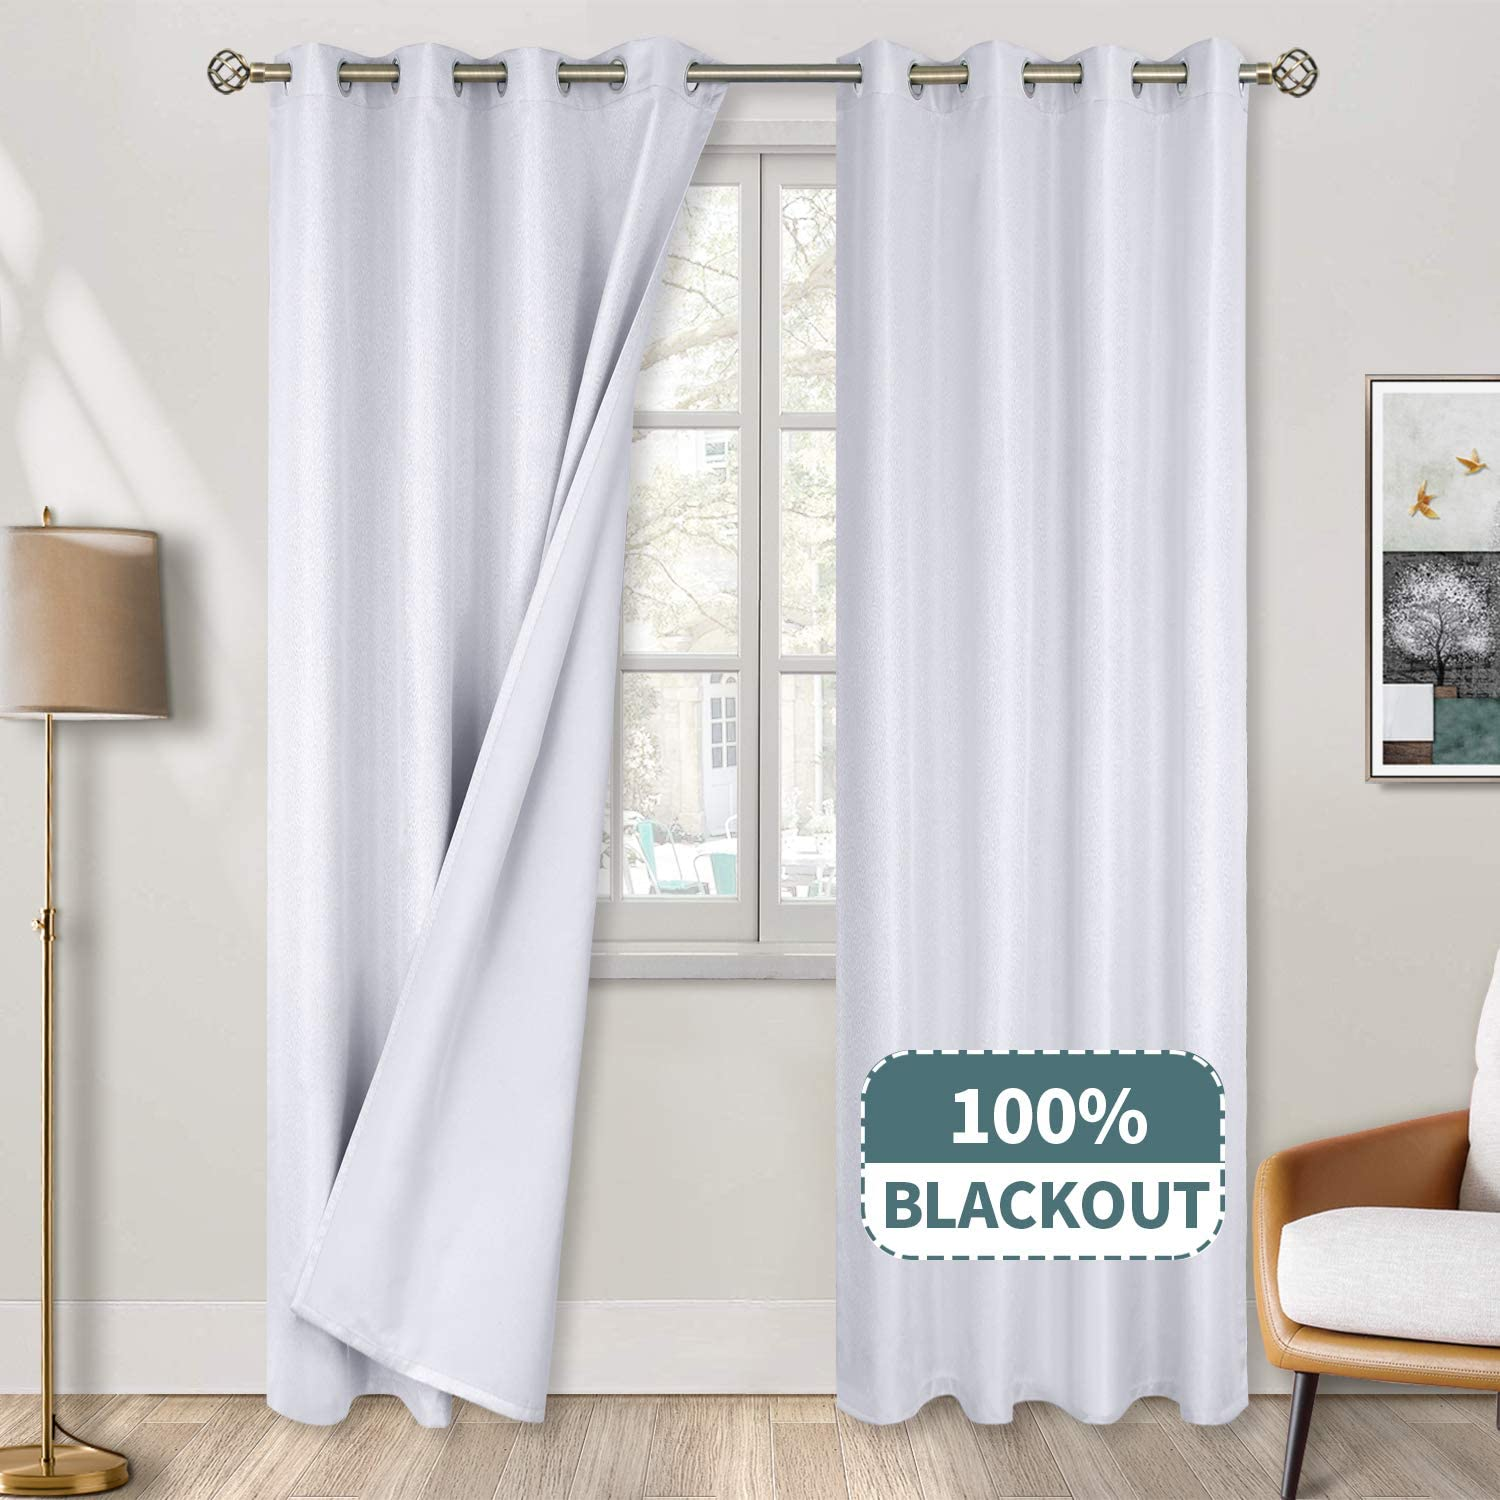 BGment 100% Blackout Curtains for New sales Grommet Ther Bedroom Sales for sale Jacquard